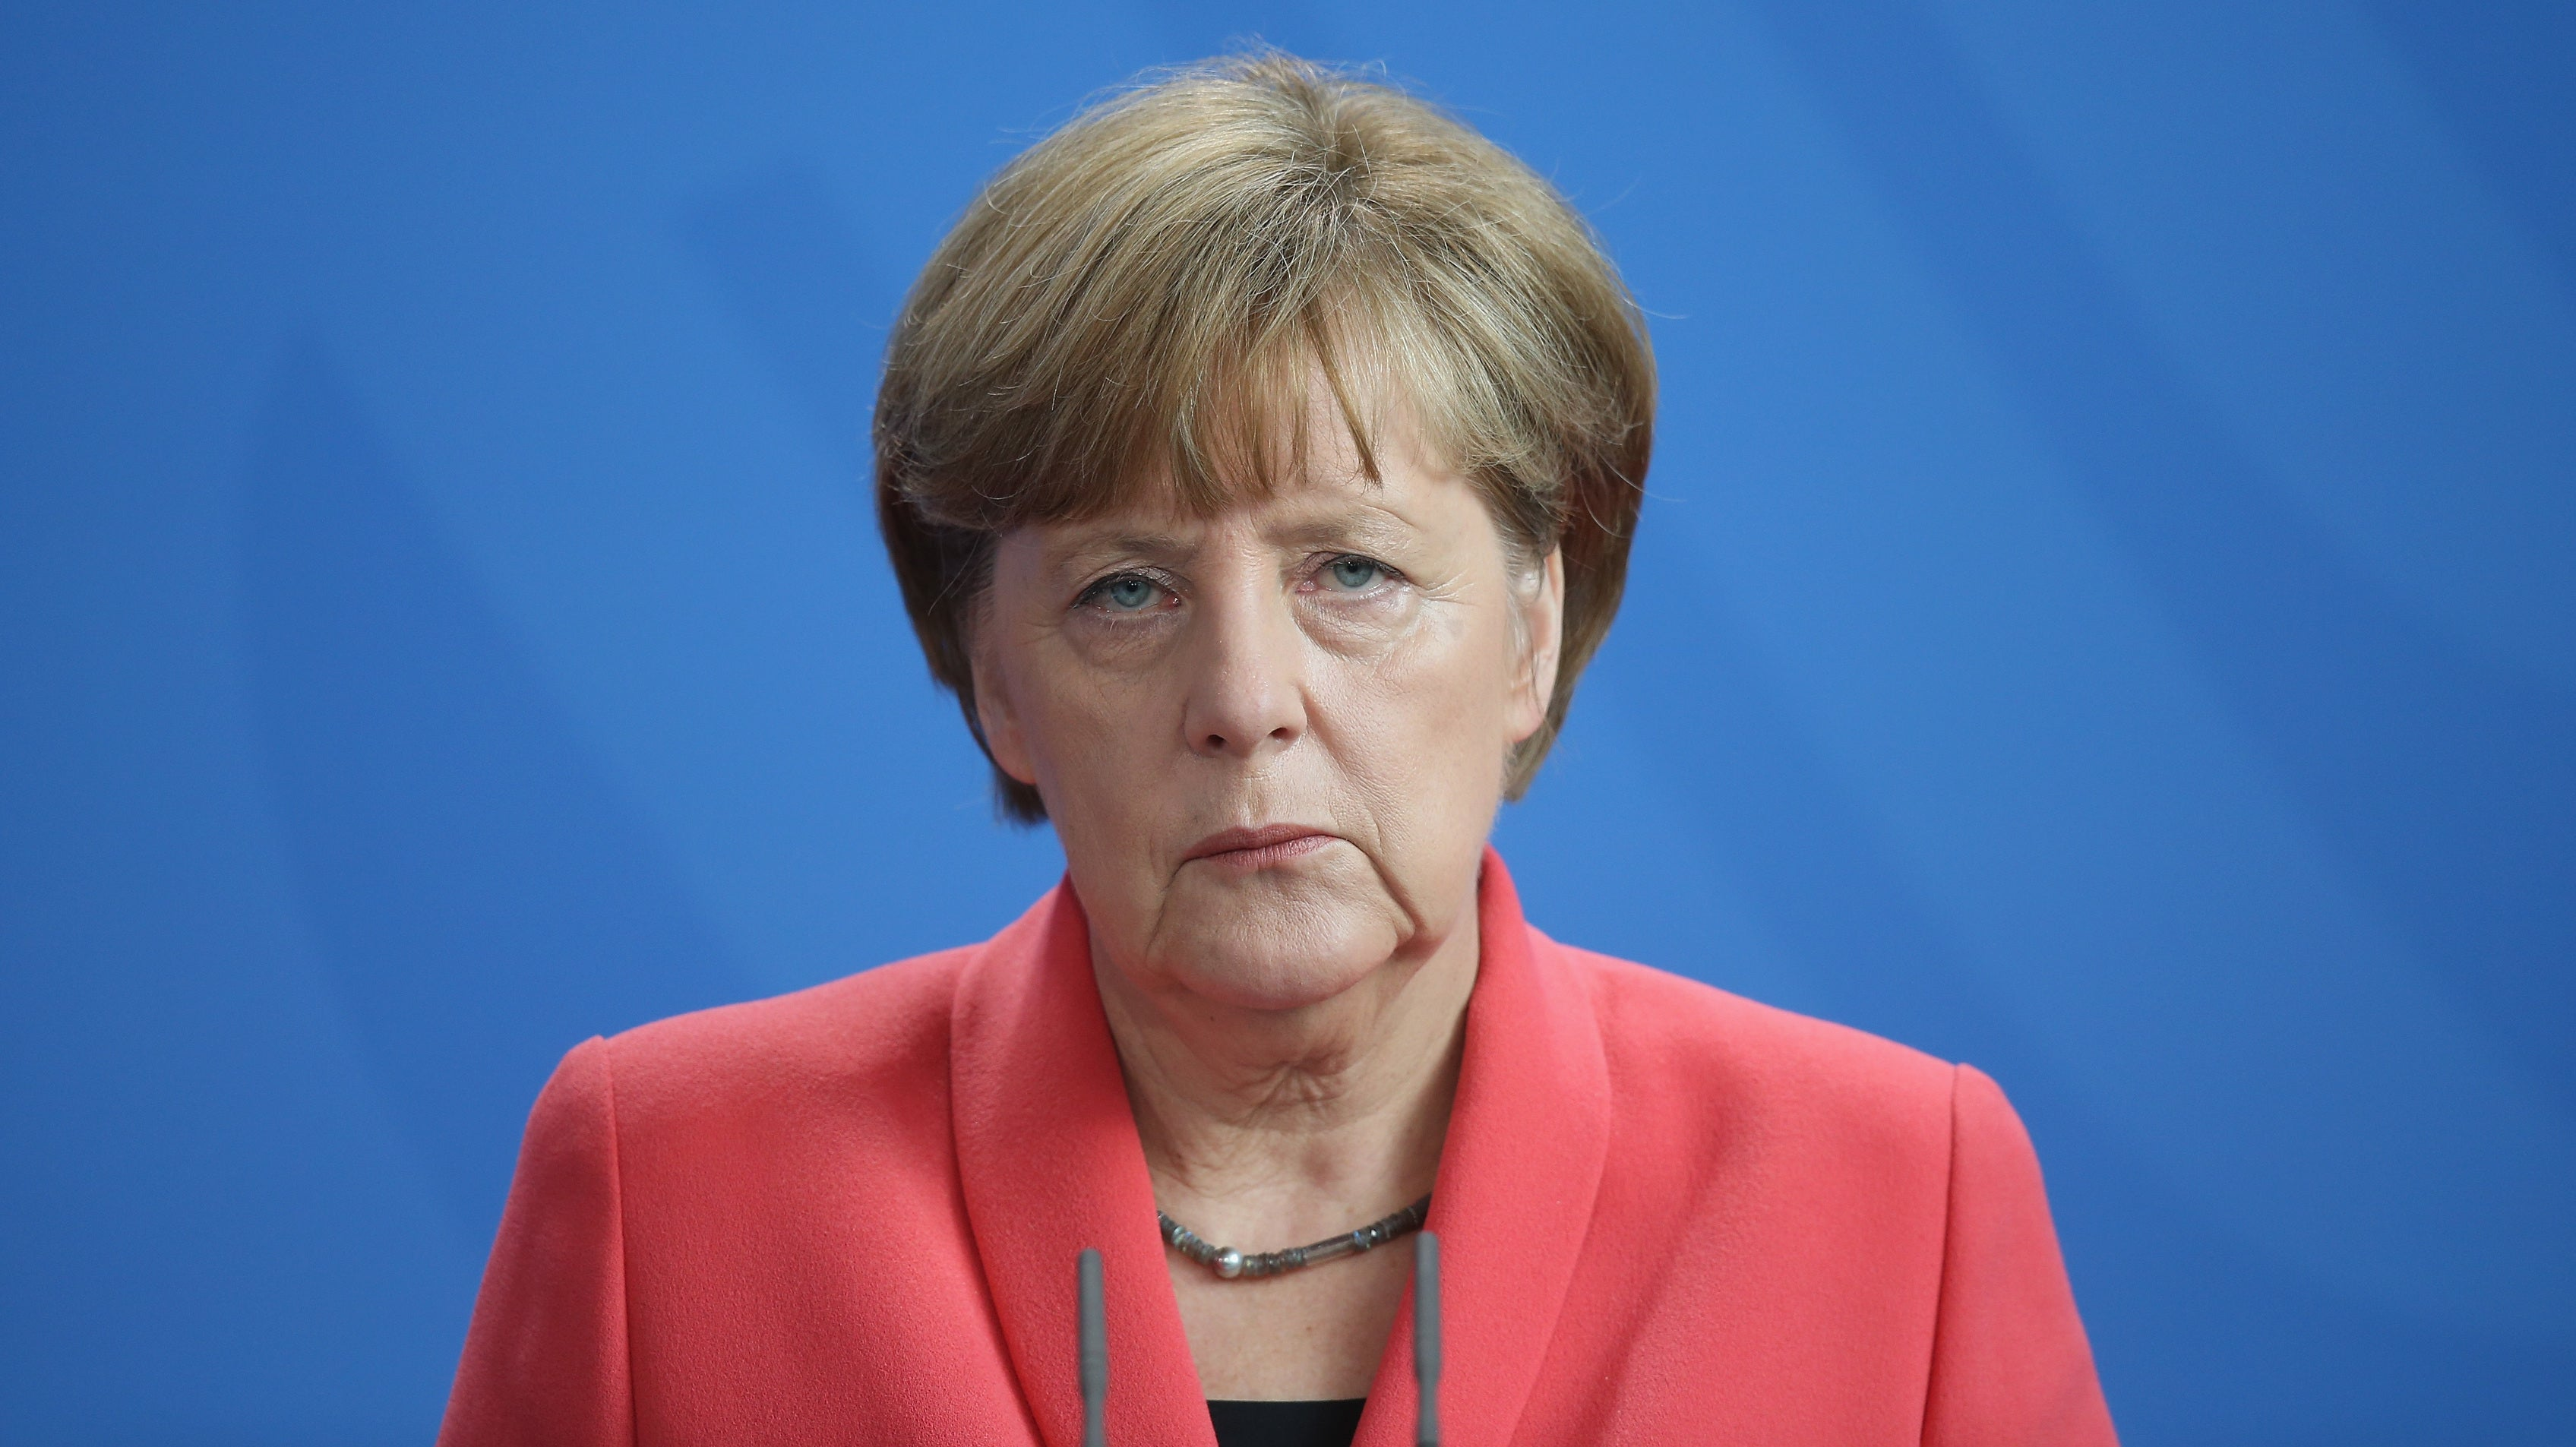 Student Confesses To Dumping The Data Of Hundreds Of German Politicians